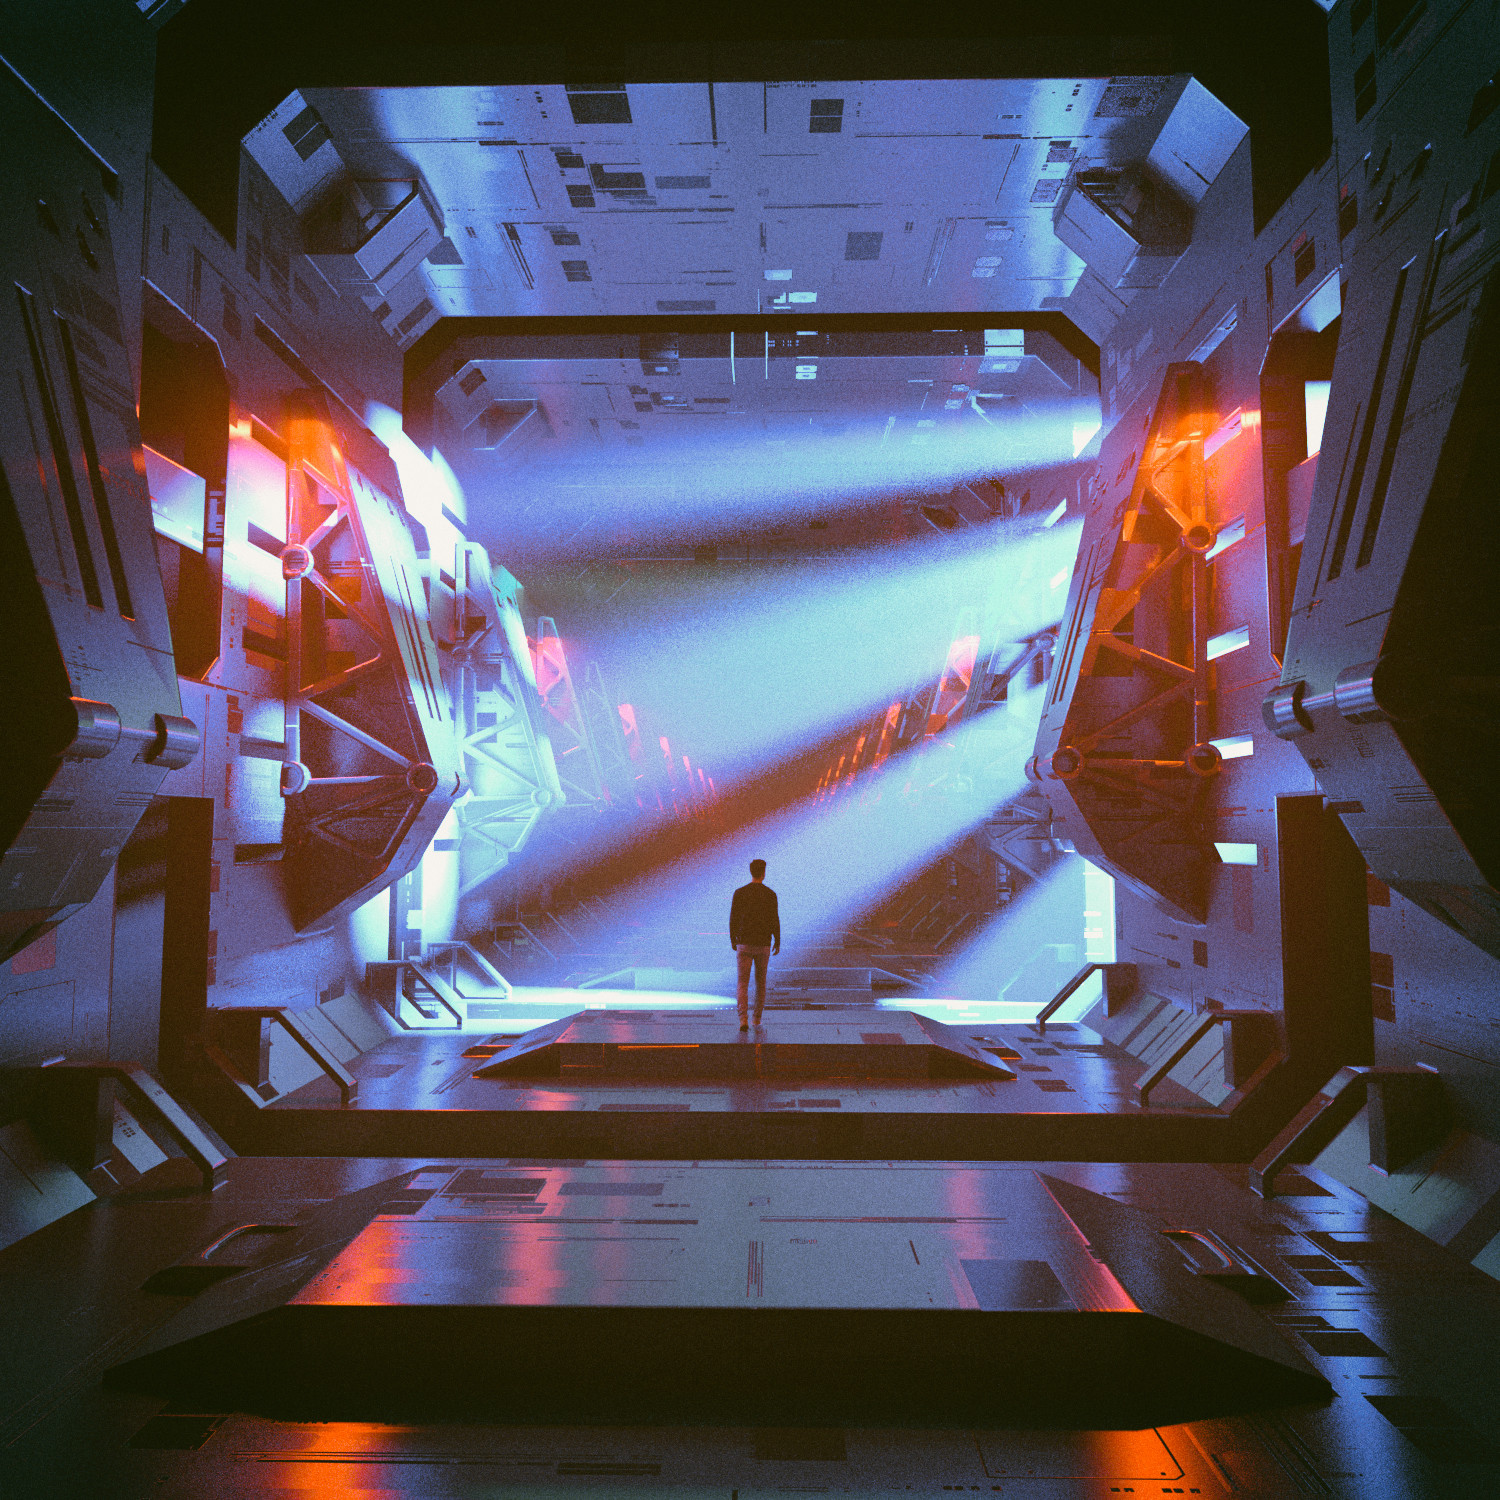 The Amazing Digital Art of Beeple